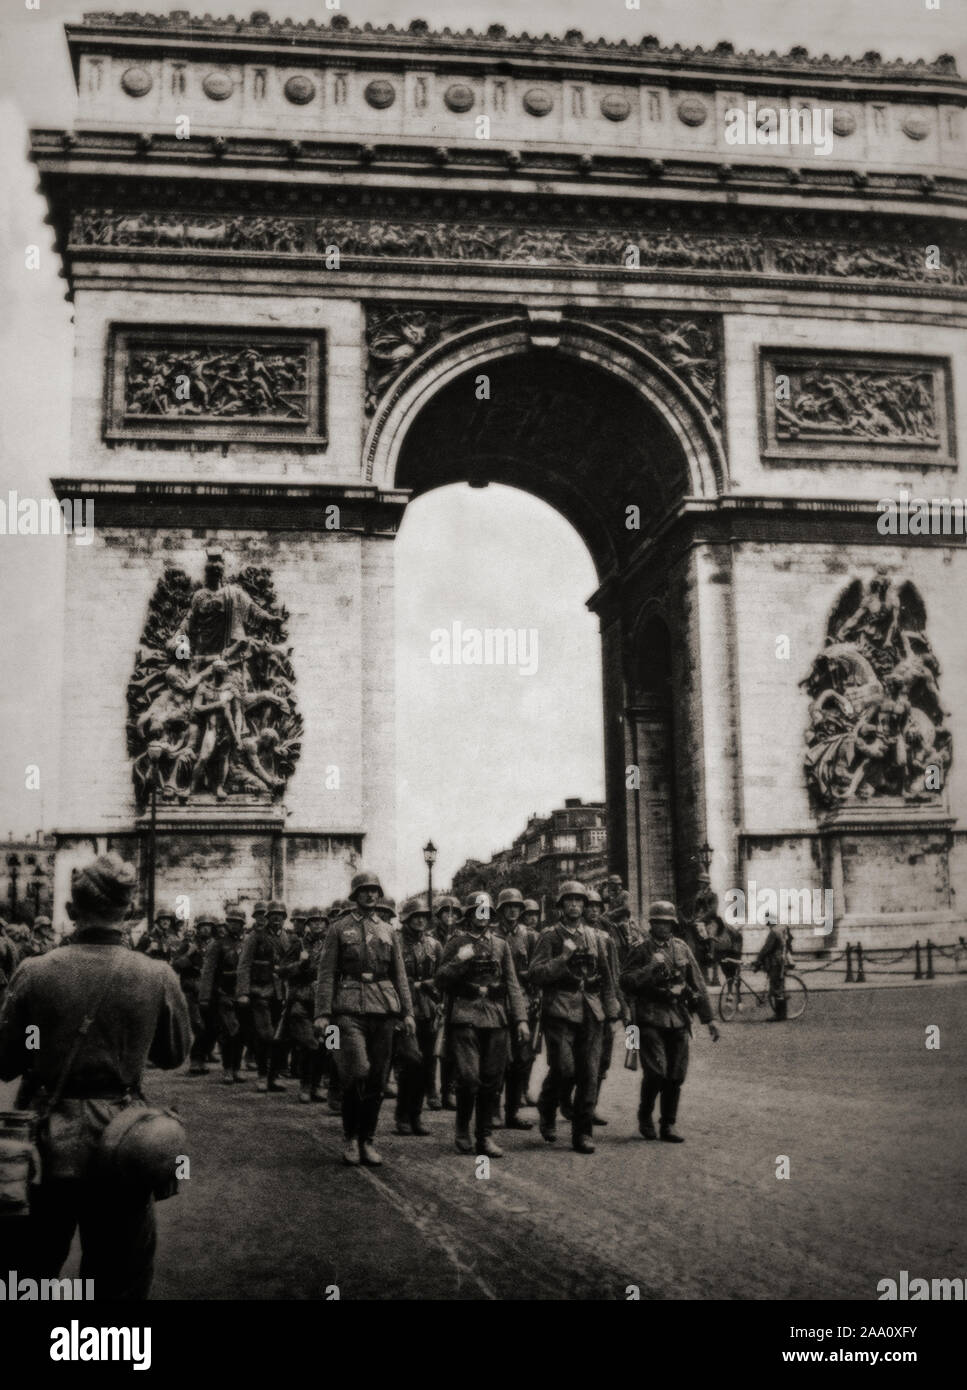 German Troops march past the Etoile in the Champs Elysees in Paris, France in June 1940, during the opening stages of the Second World War. Stock Photo